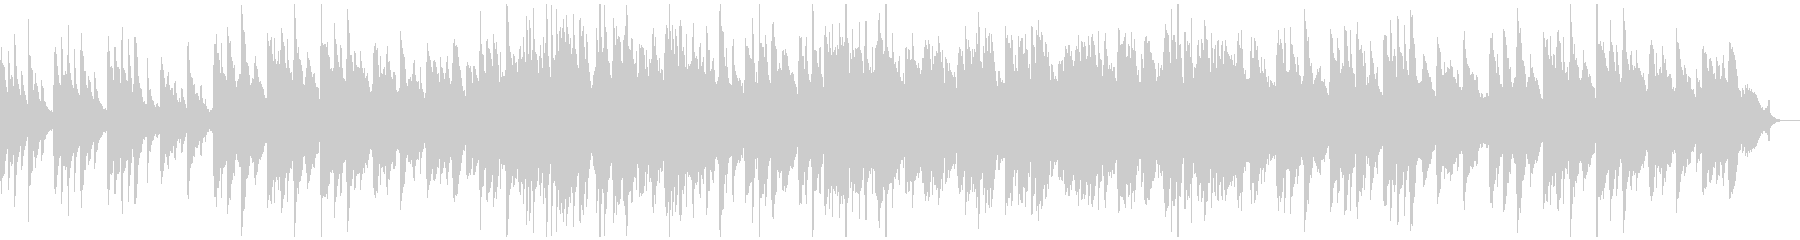 A warm and warm piano song's unreproduced waveform